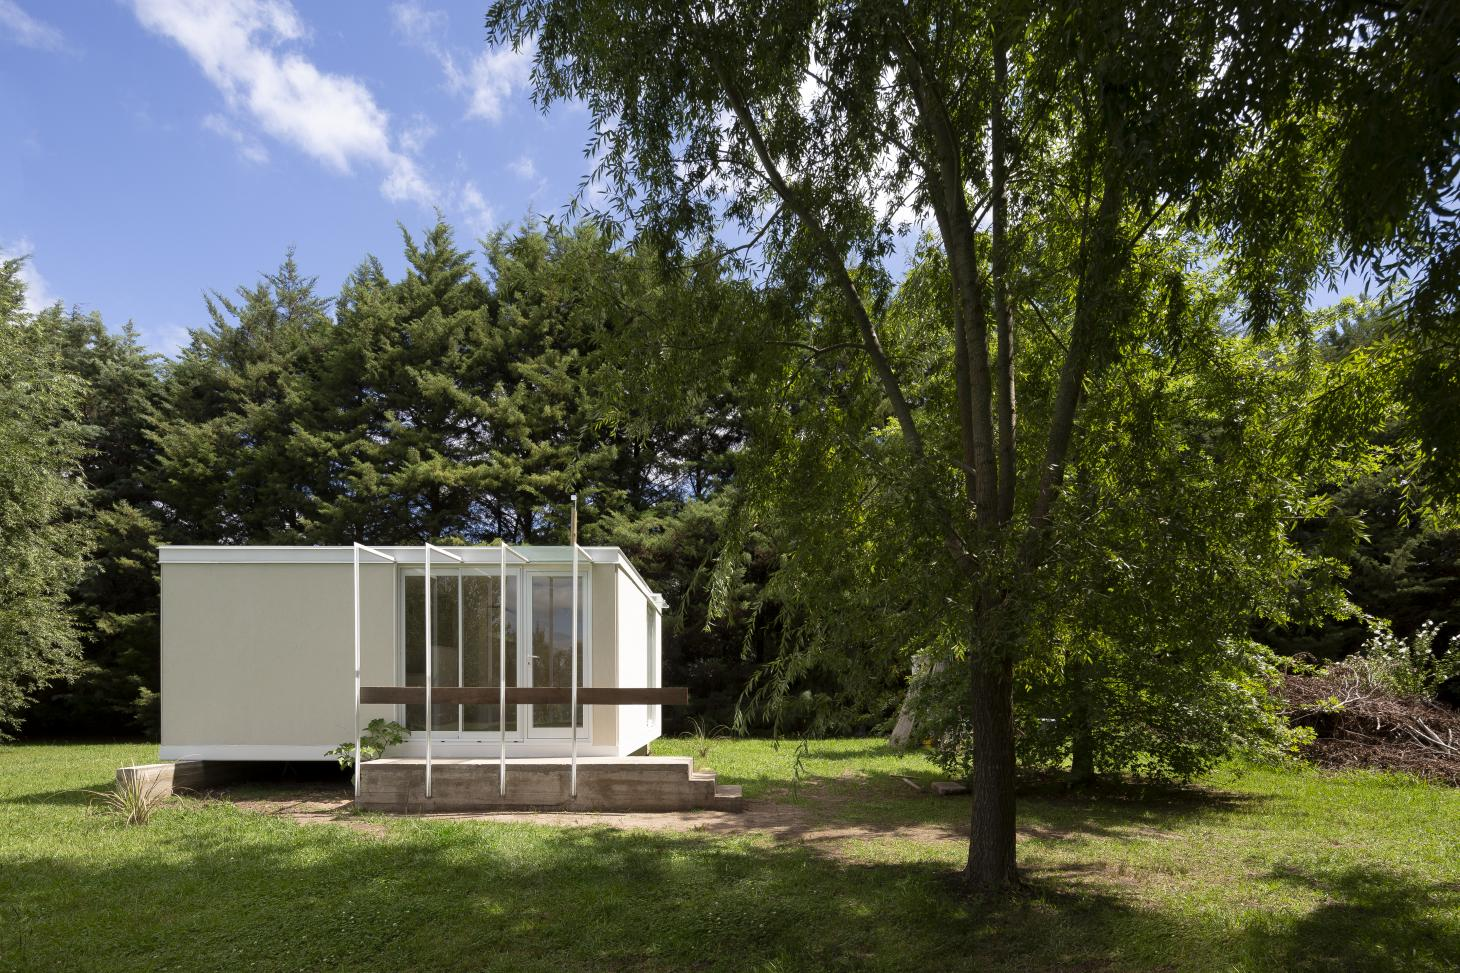 the Refugio cabin by architects colle croce